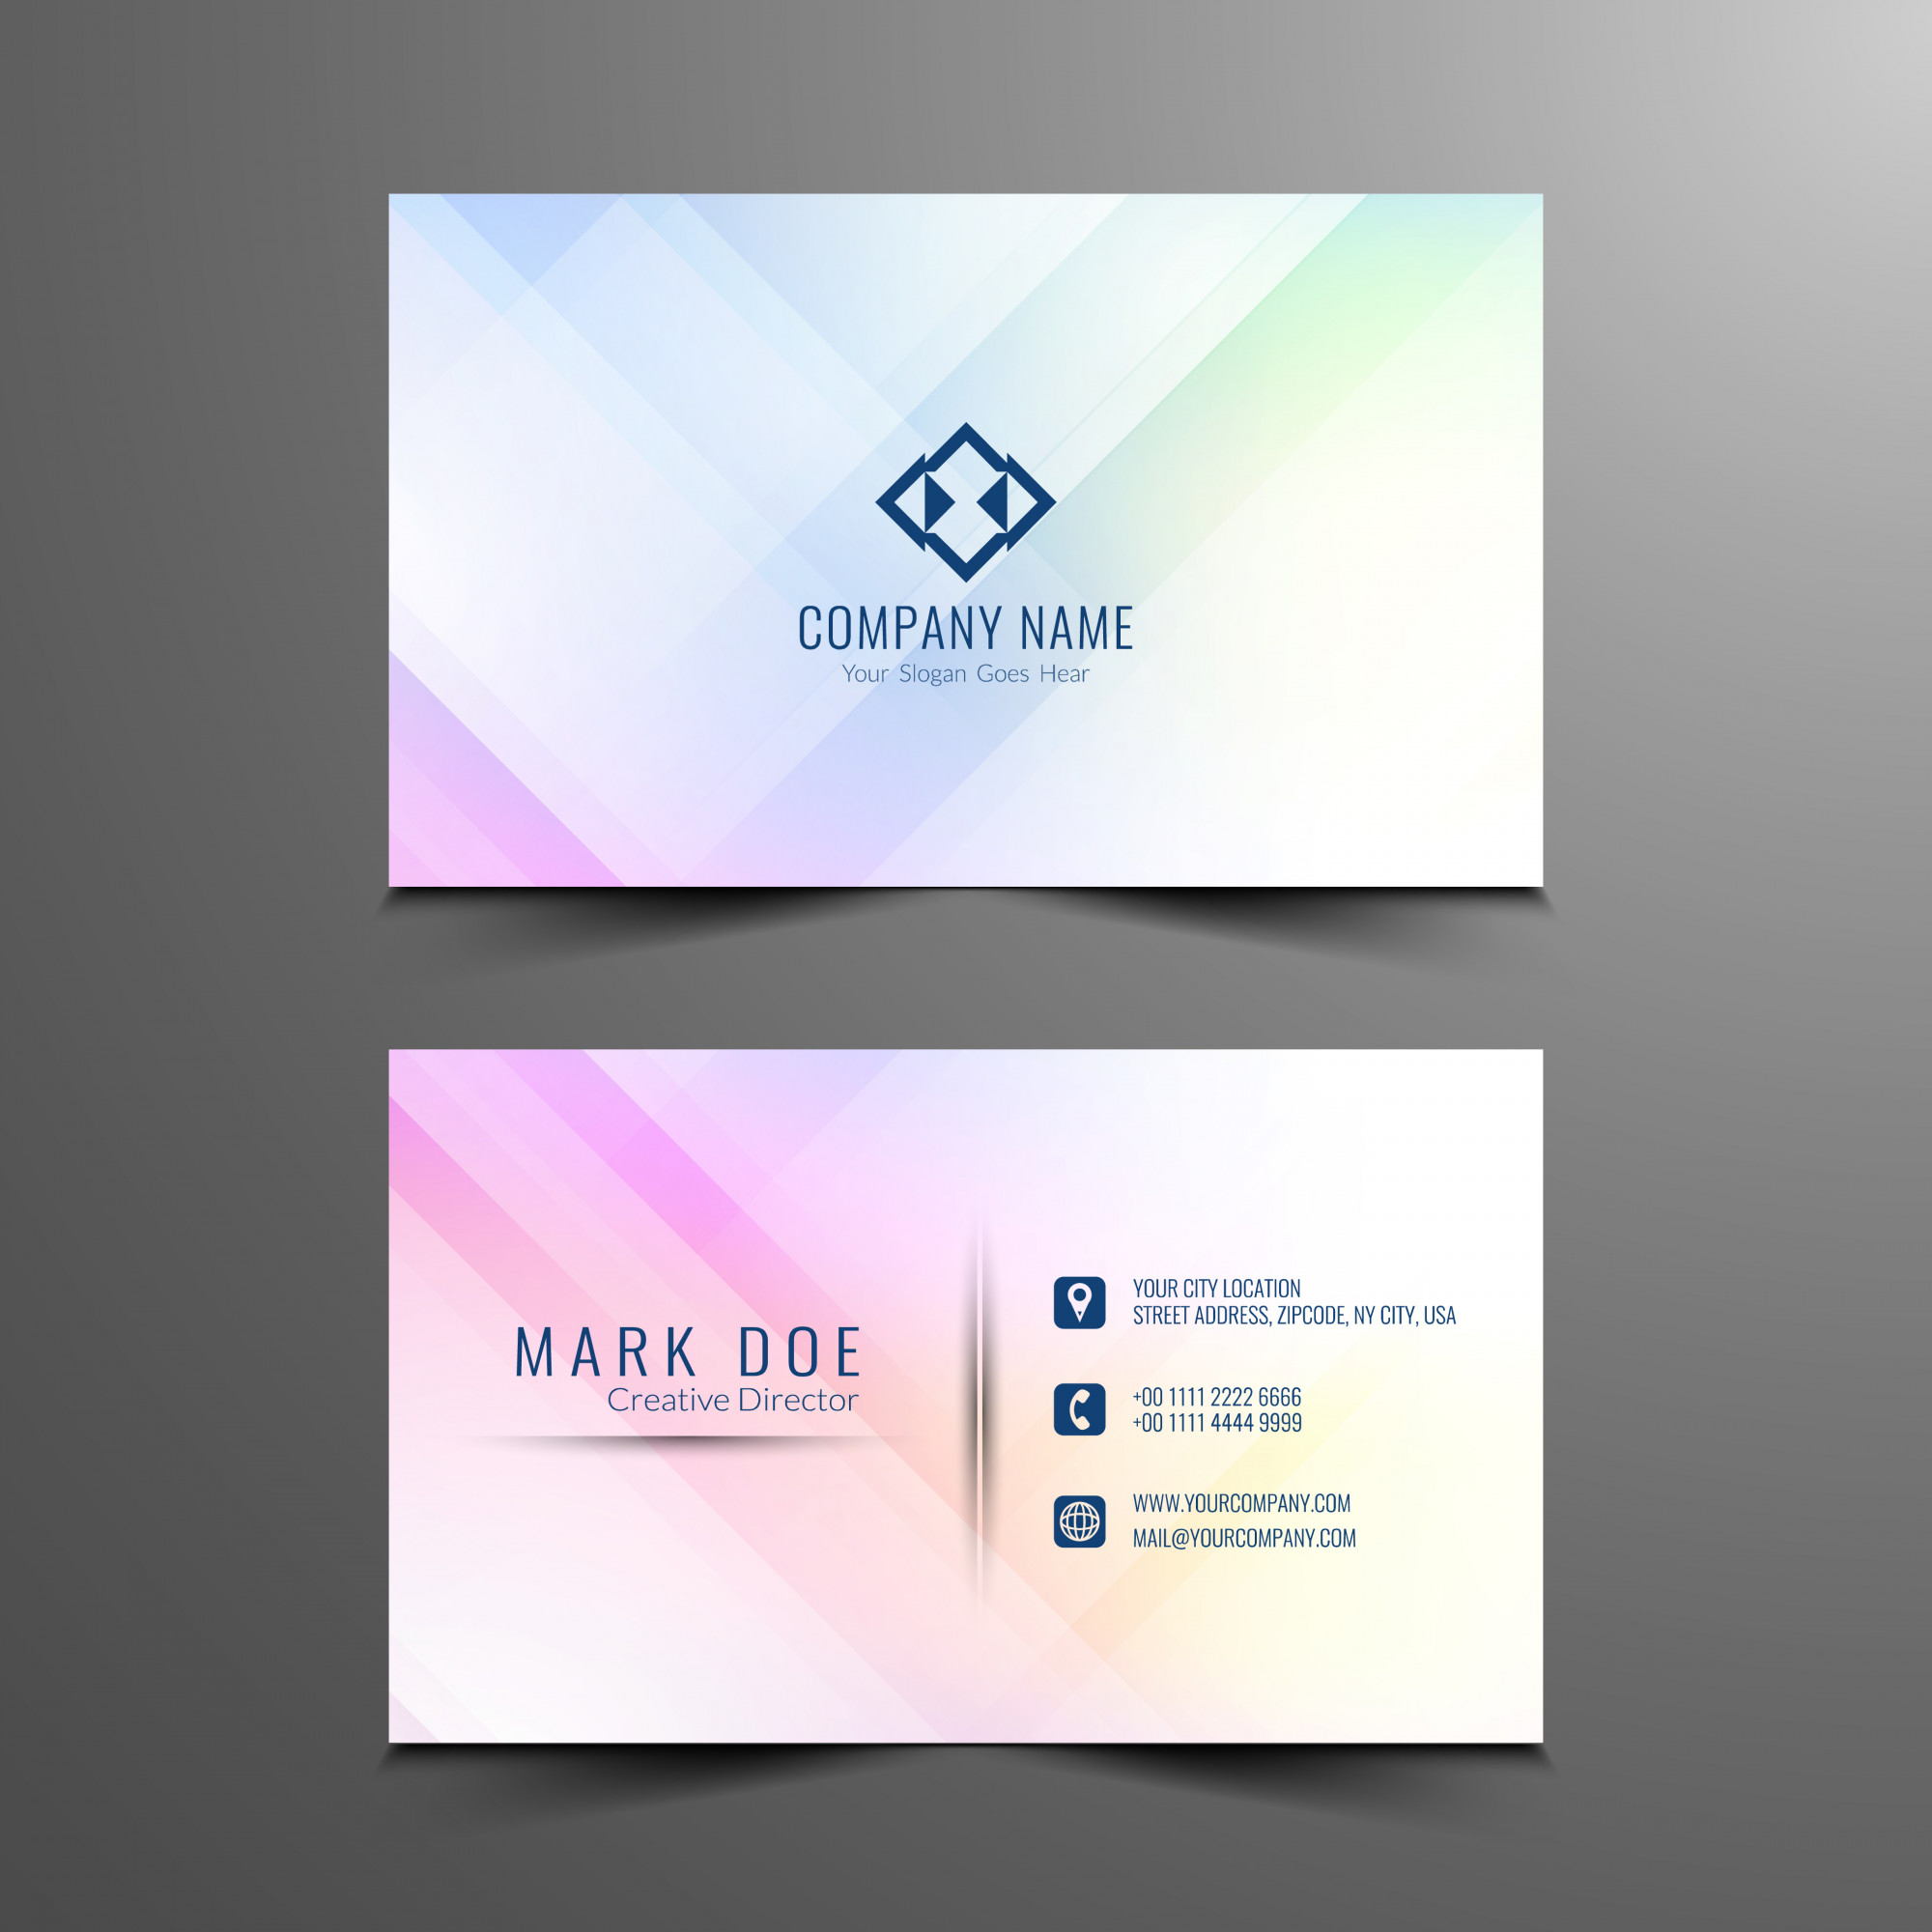 Business vectors 149900 free files in eps format abstract business card design template reheart Image collections